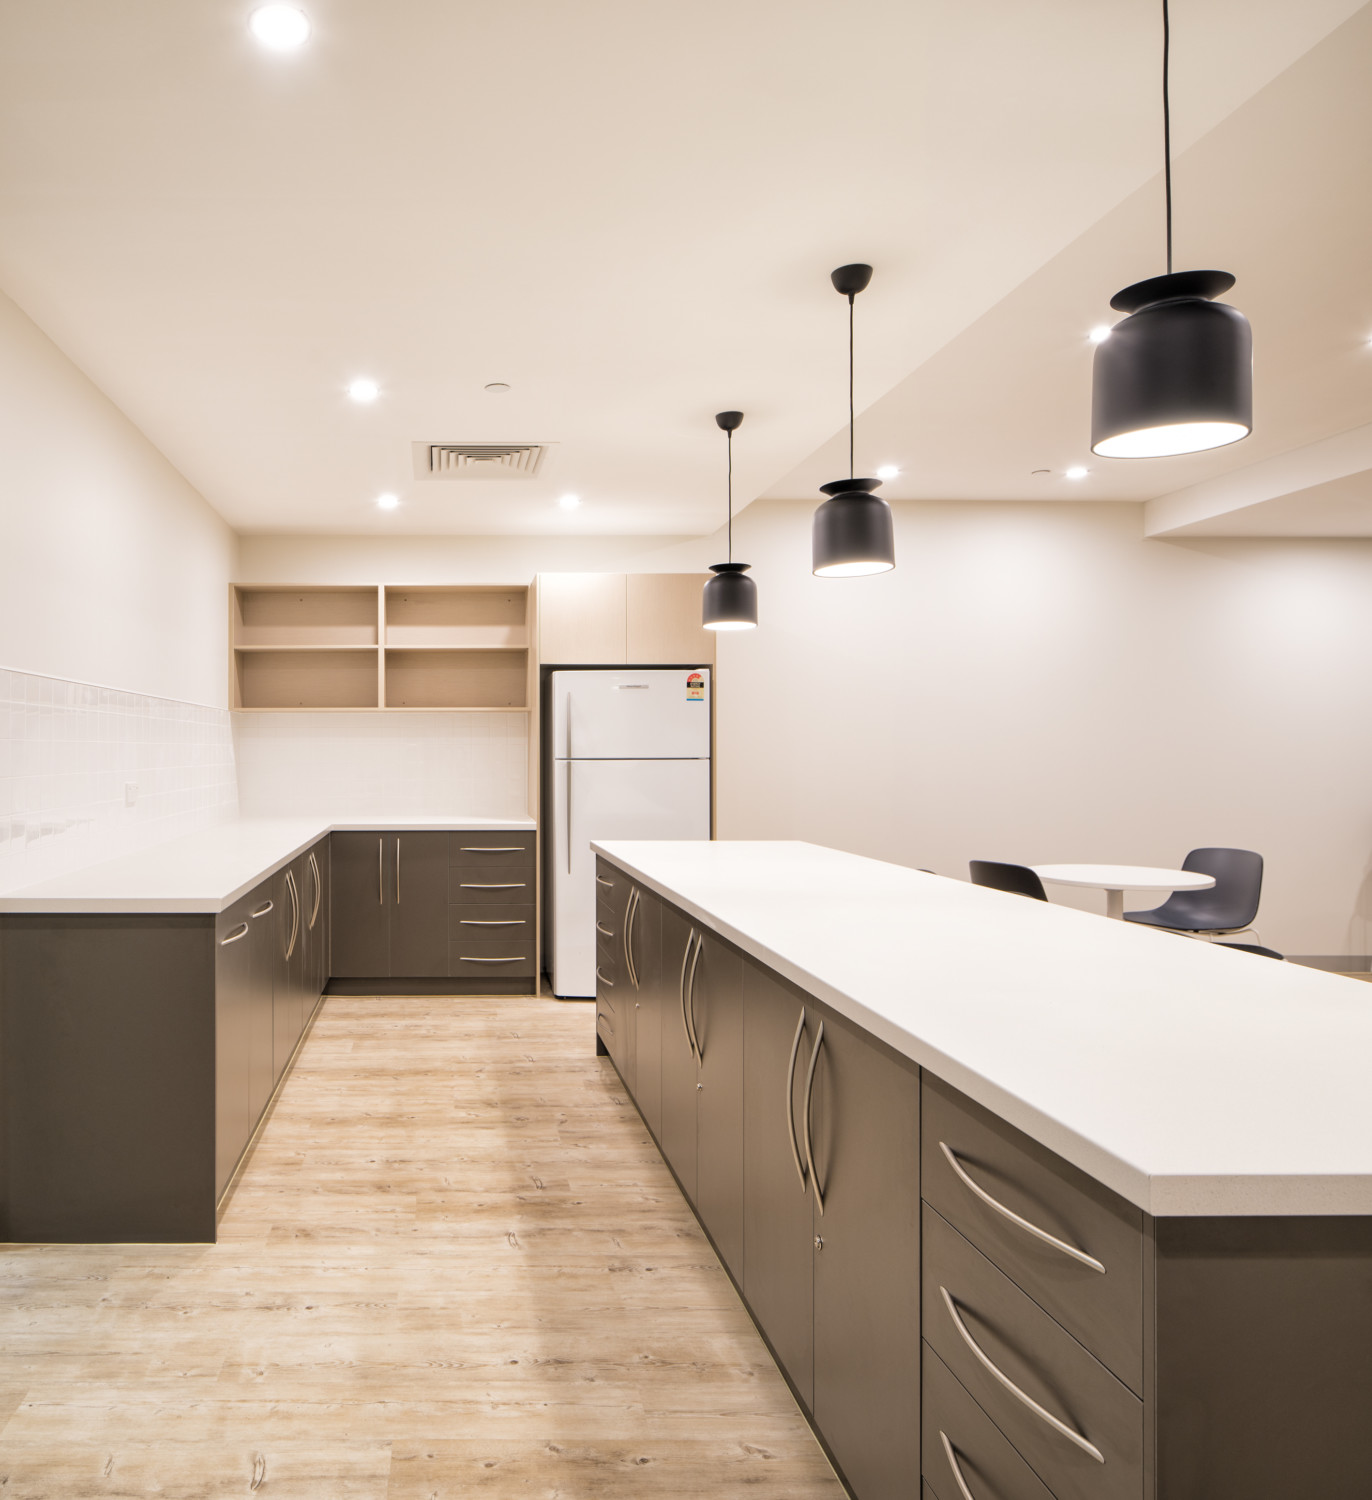 interior design in office. Kitchen, Timber Flooring For Office, Breakout Cafe Interior Design In Office